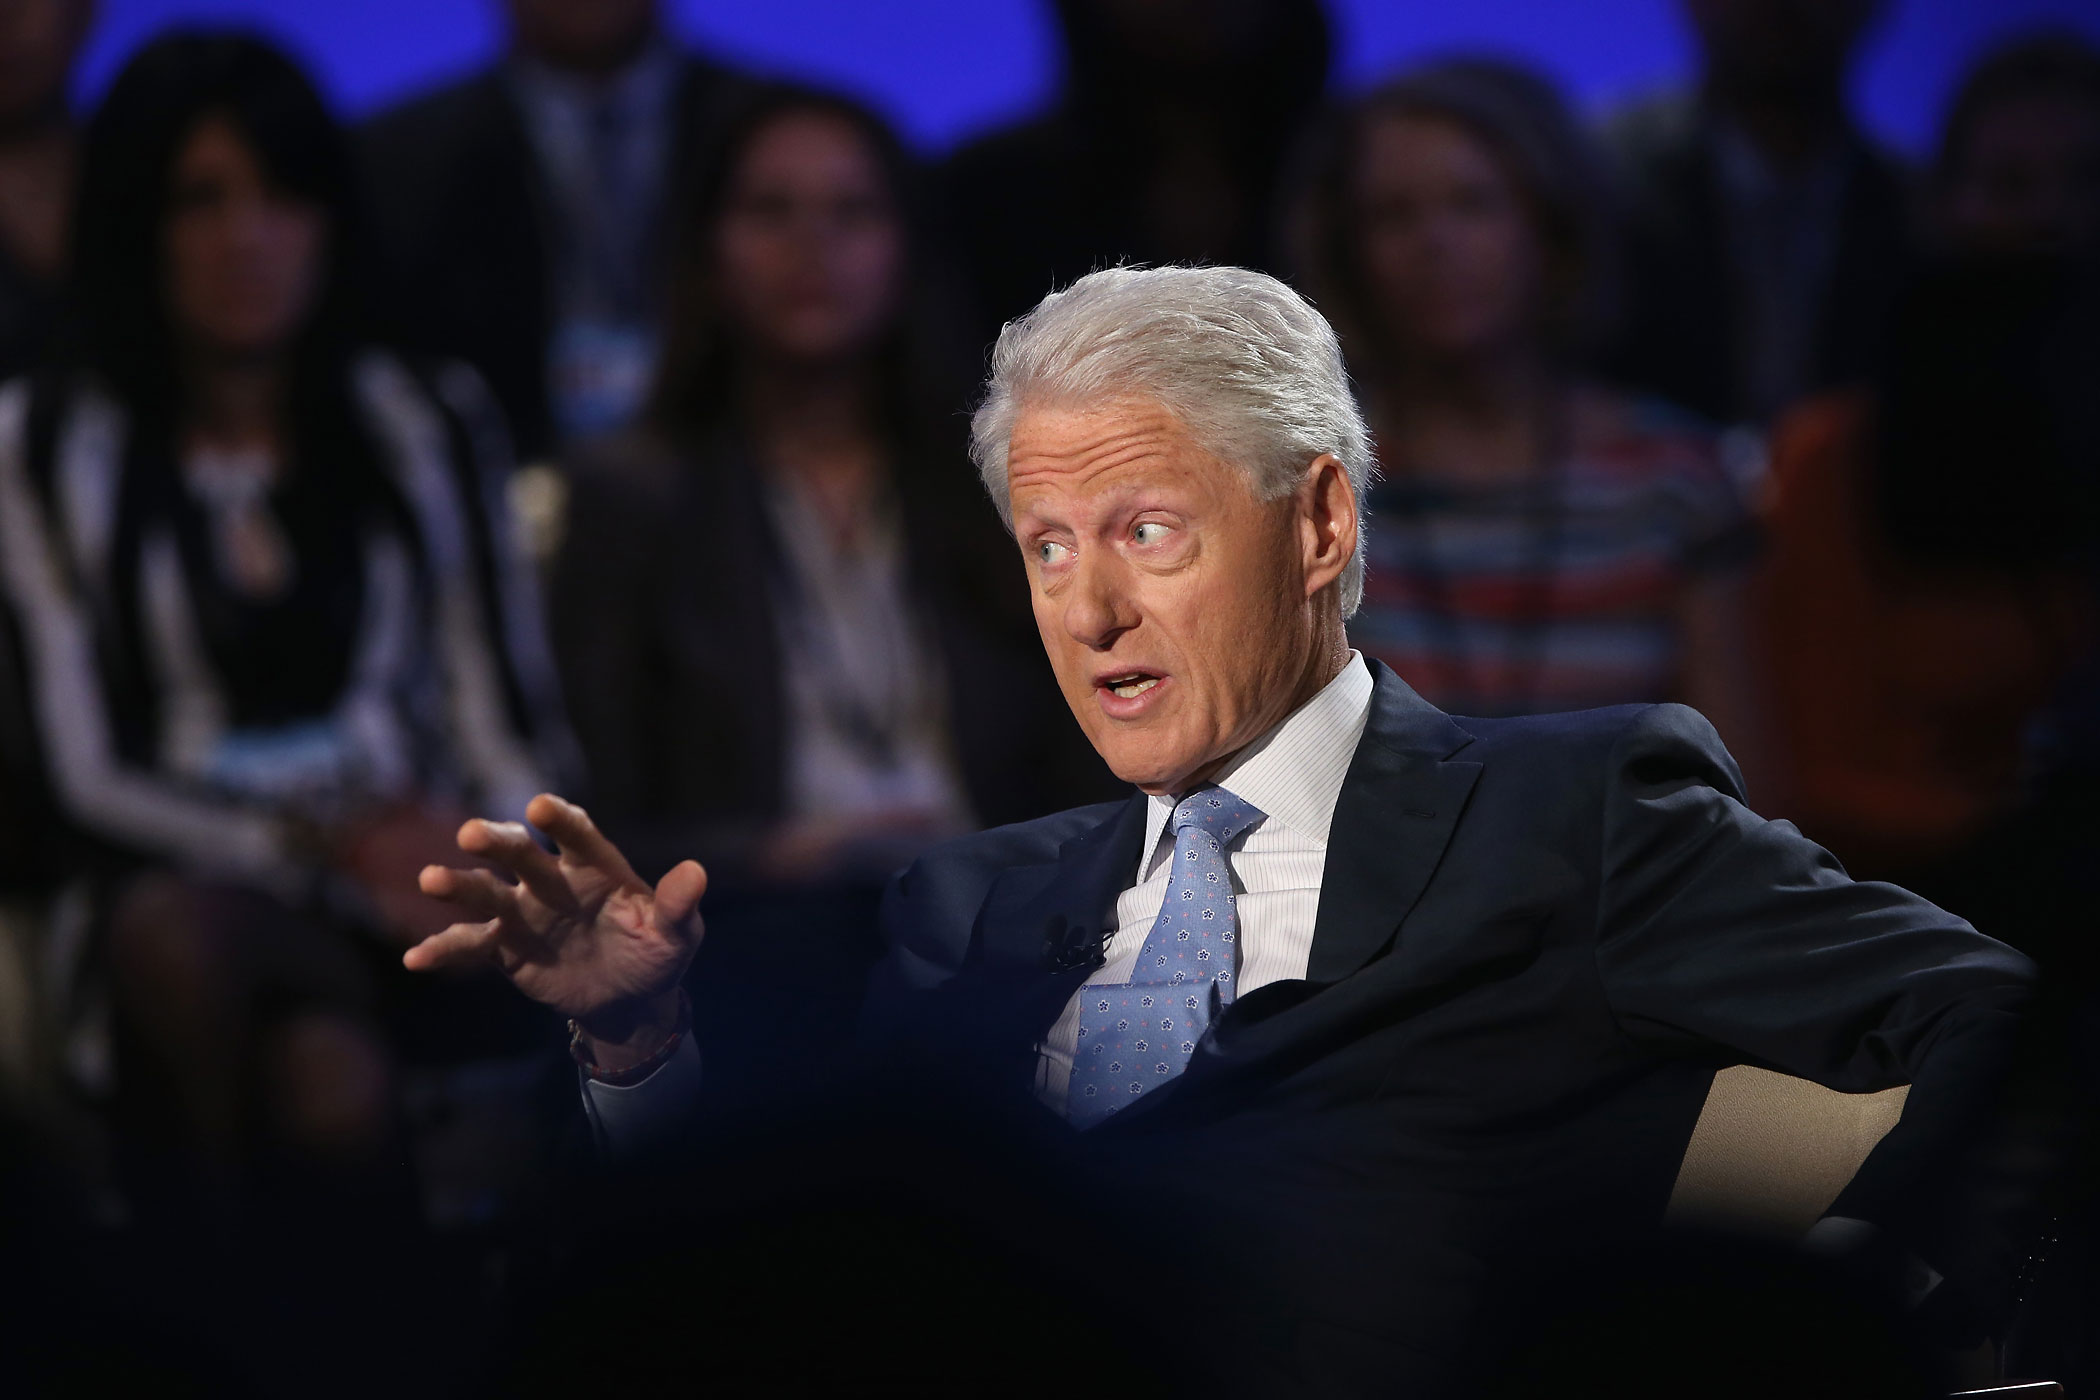 Former President Bill Clinton speaks during a breakout session at the Clinton Global Initiative , on September 23, 2014 in New York City.